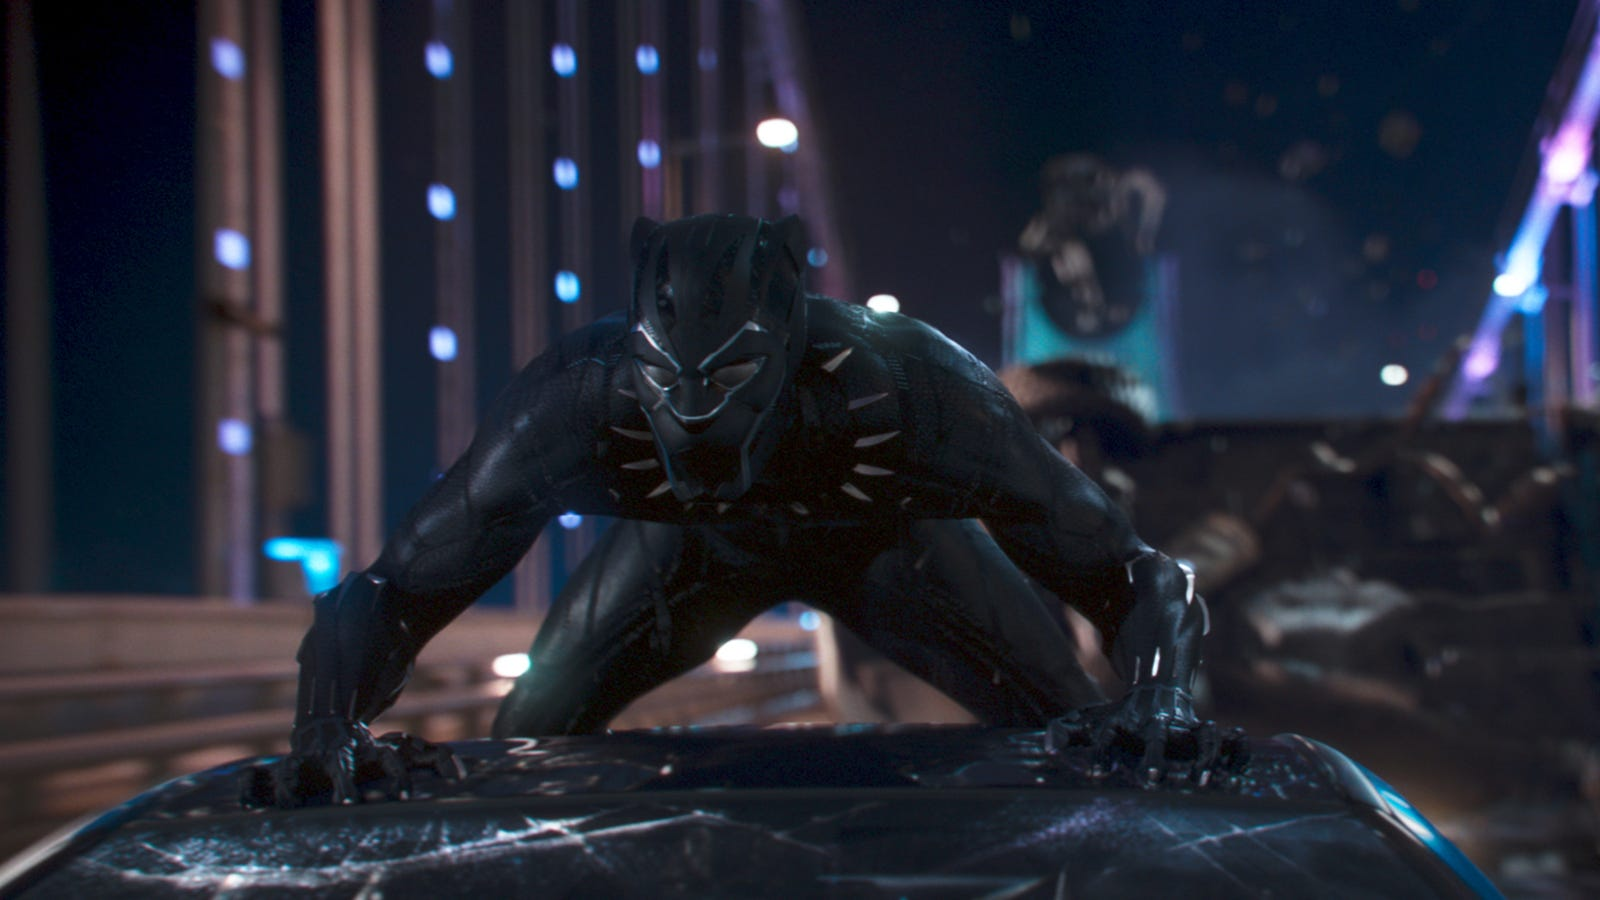 New York man raises more than $30,000 to take kids to see Black Panther